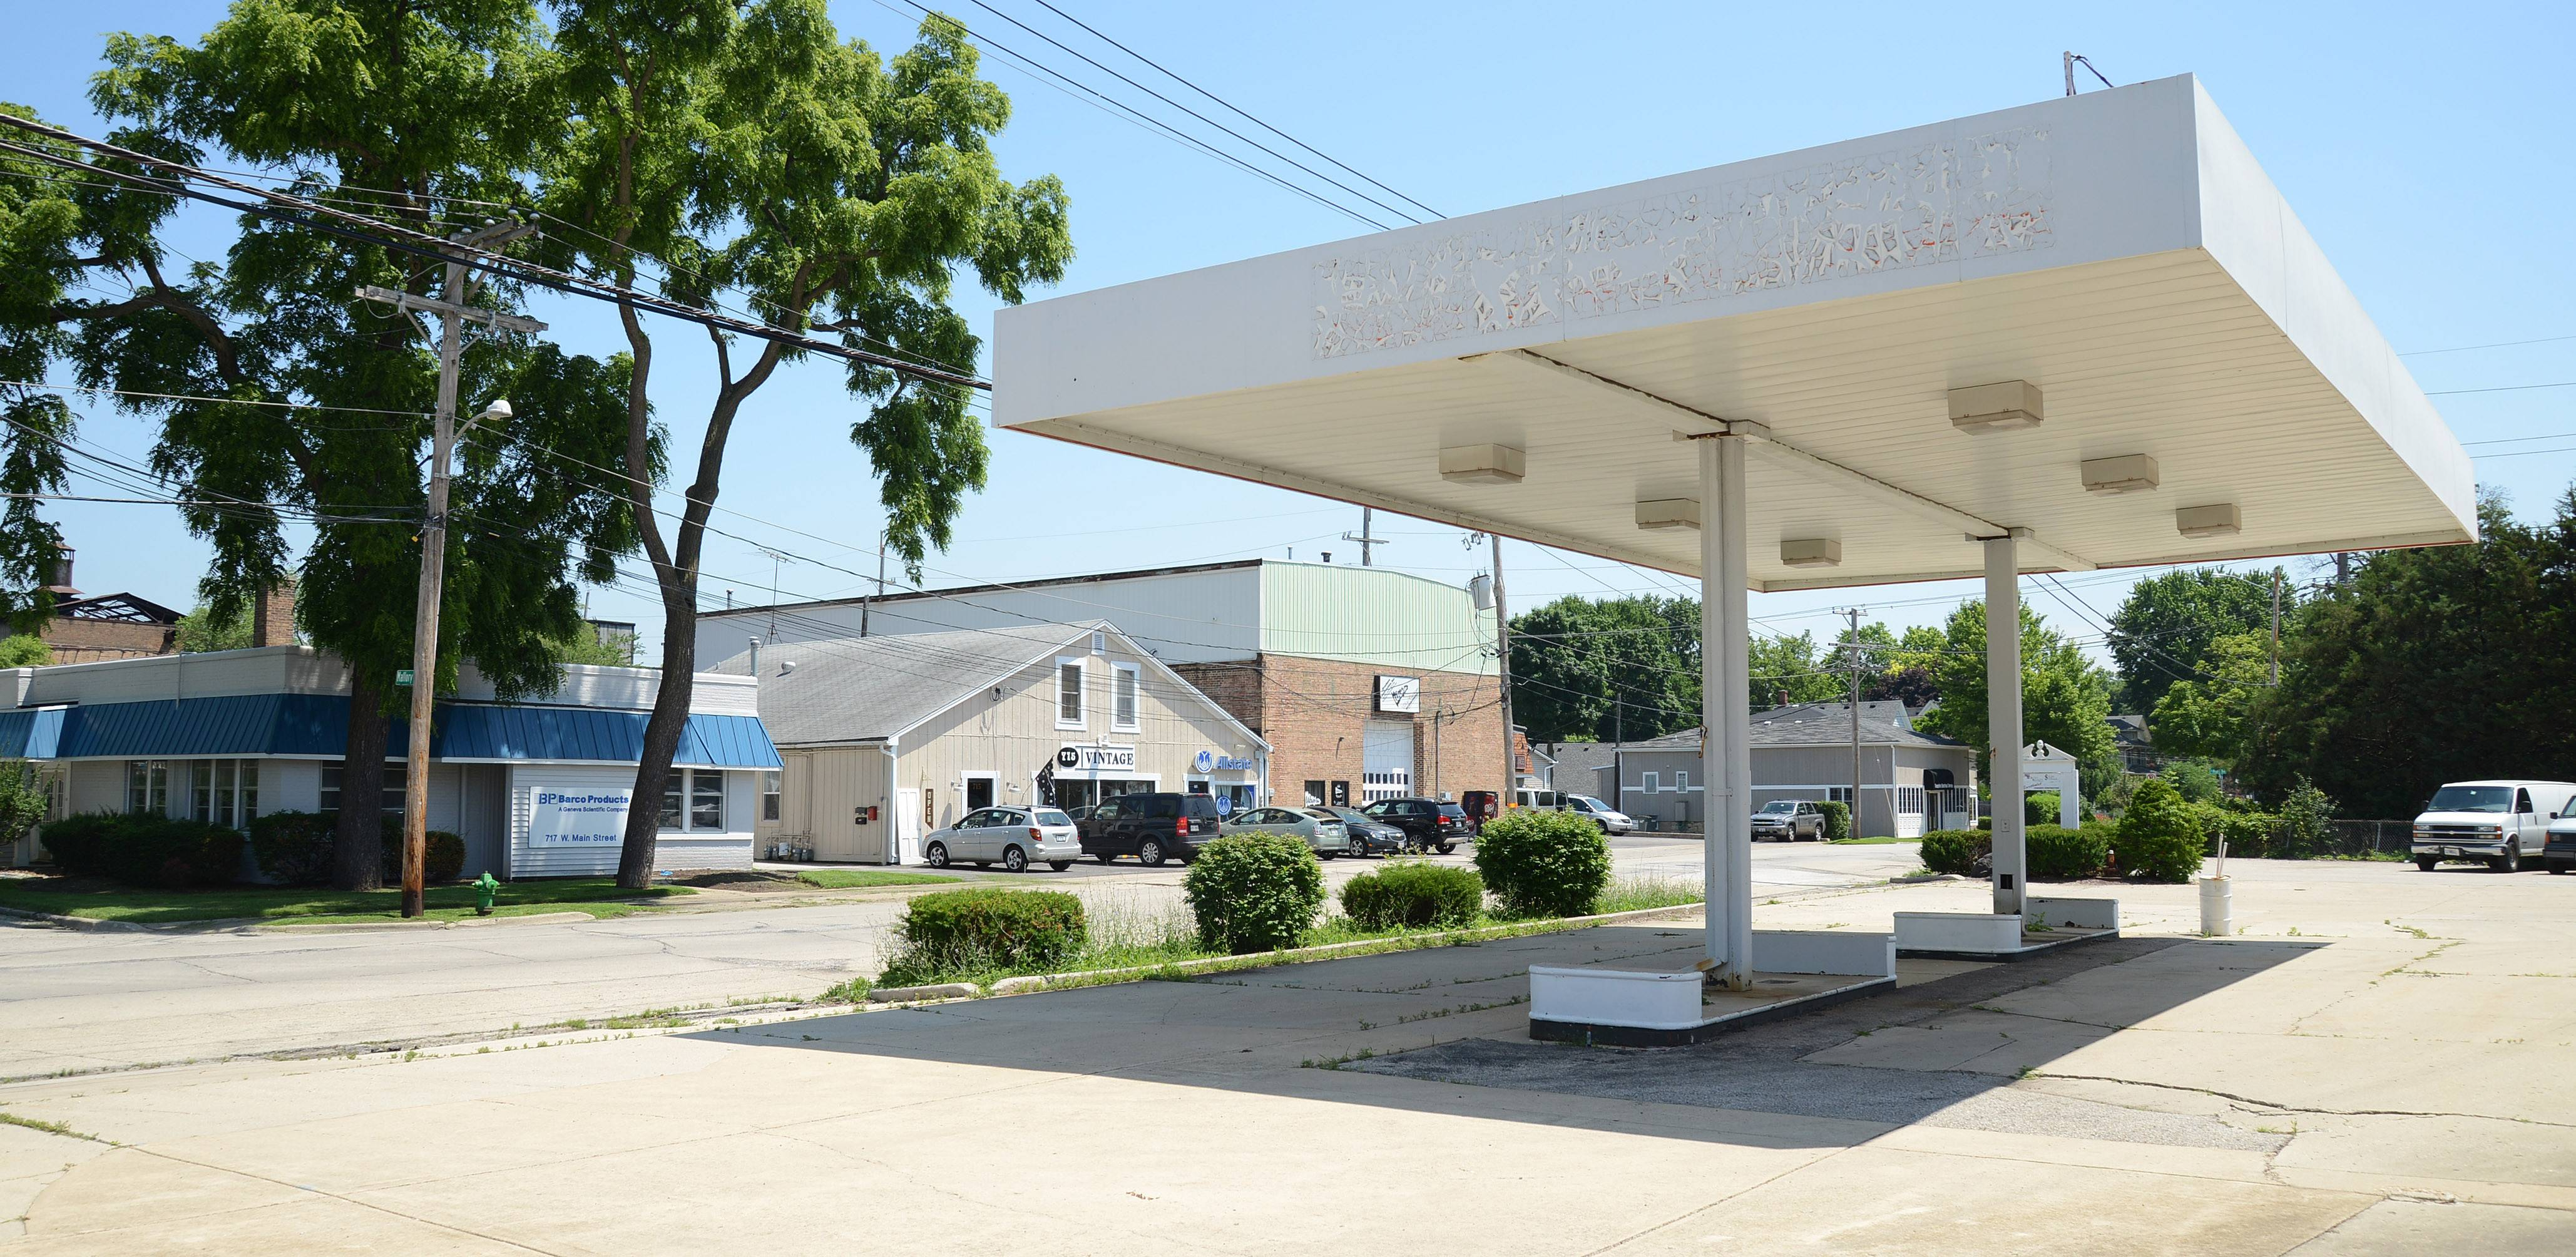 A former gasoline station, which has recently be used for storage, is in a neighborhood along West Main Street in Batavia that city officials believe could be revitalized with the help of tax-increment financing.